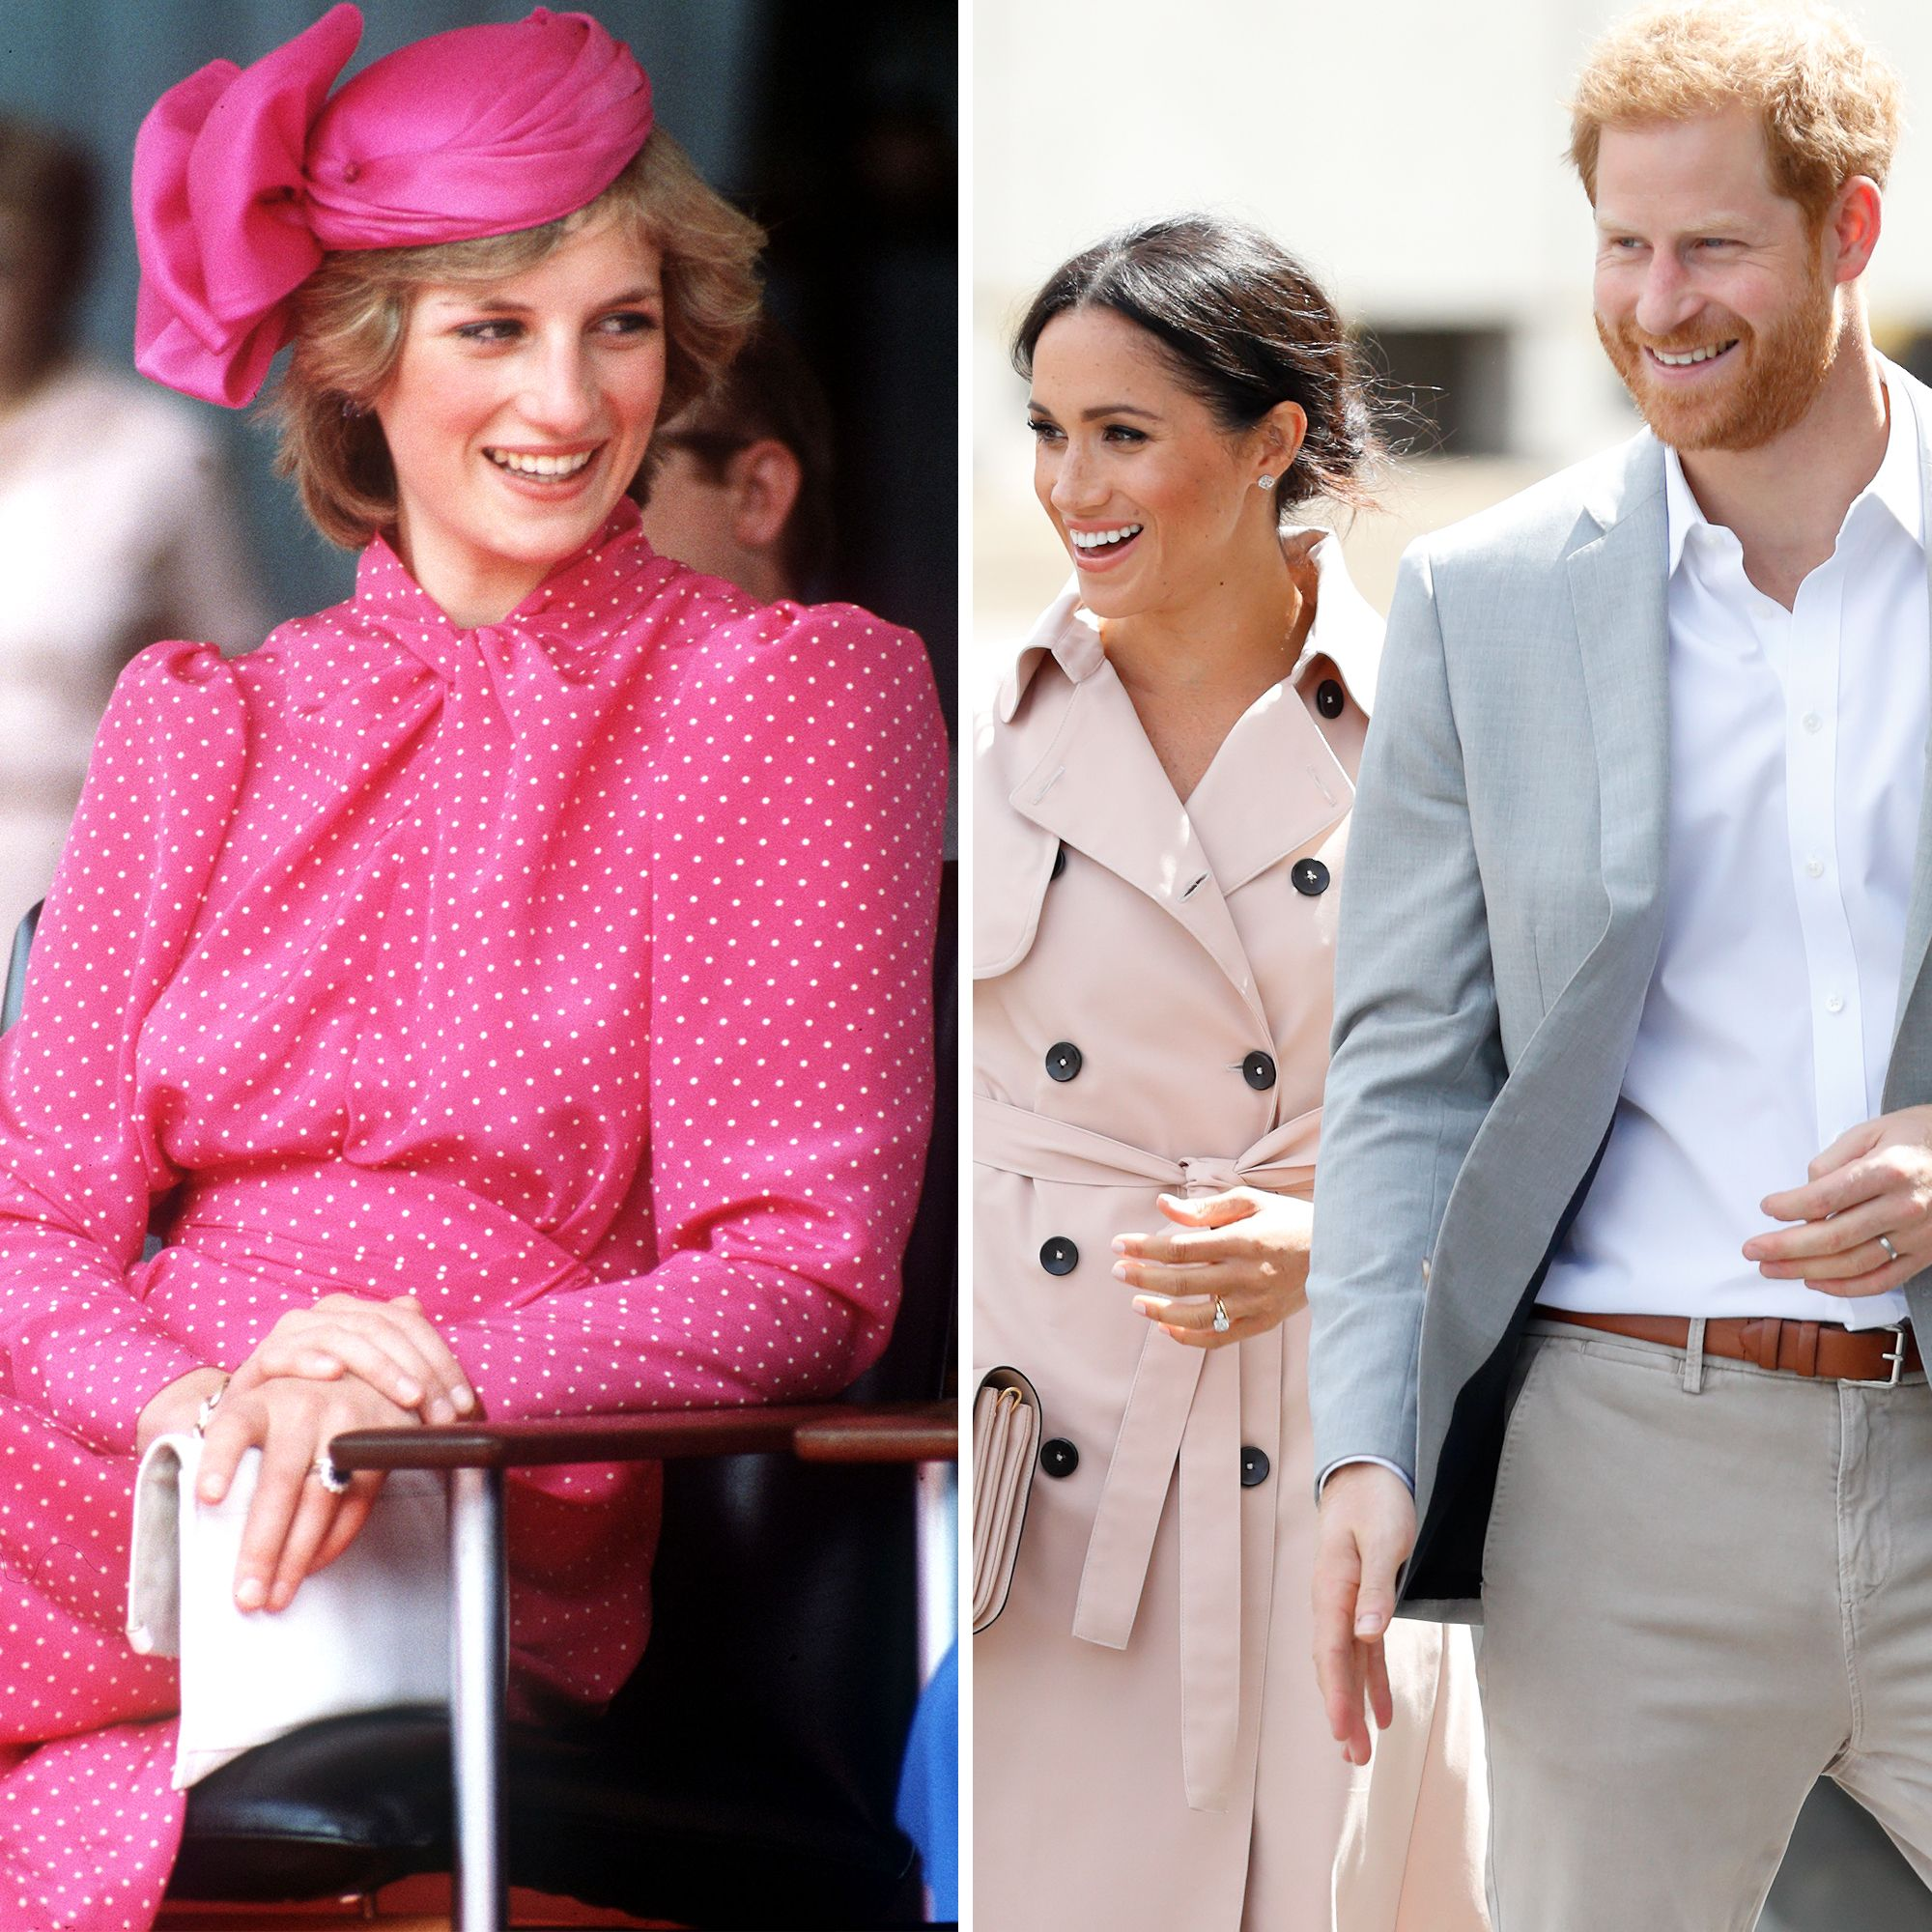 There's a Subtle Nod to Princess Diana in the Royal Baby Announcement